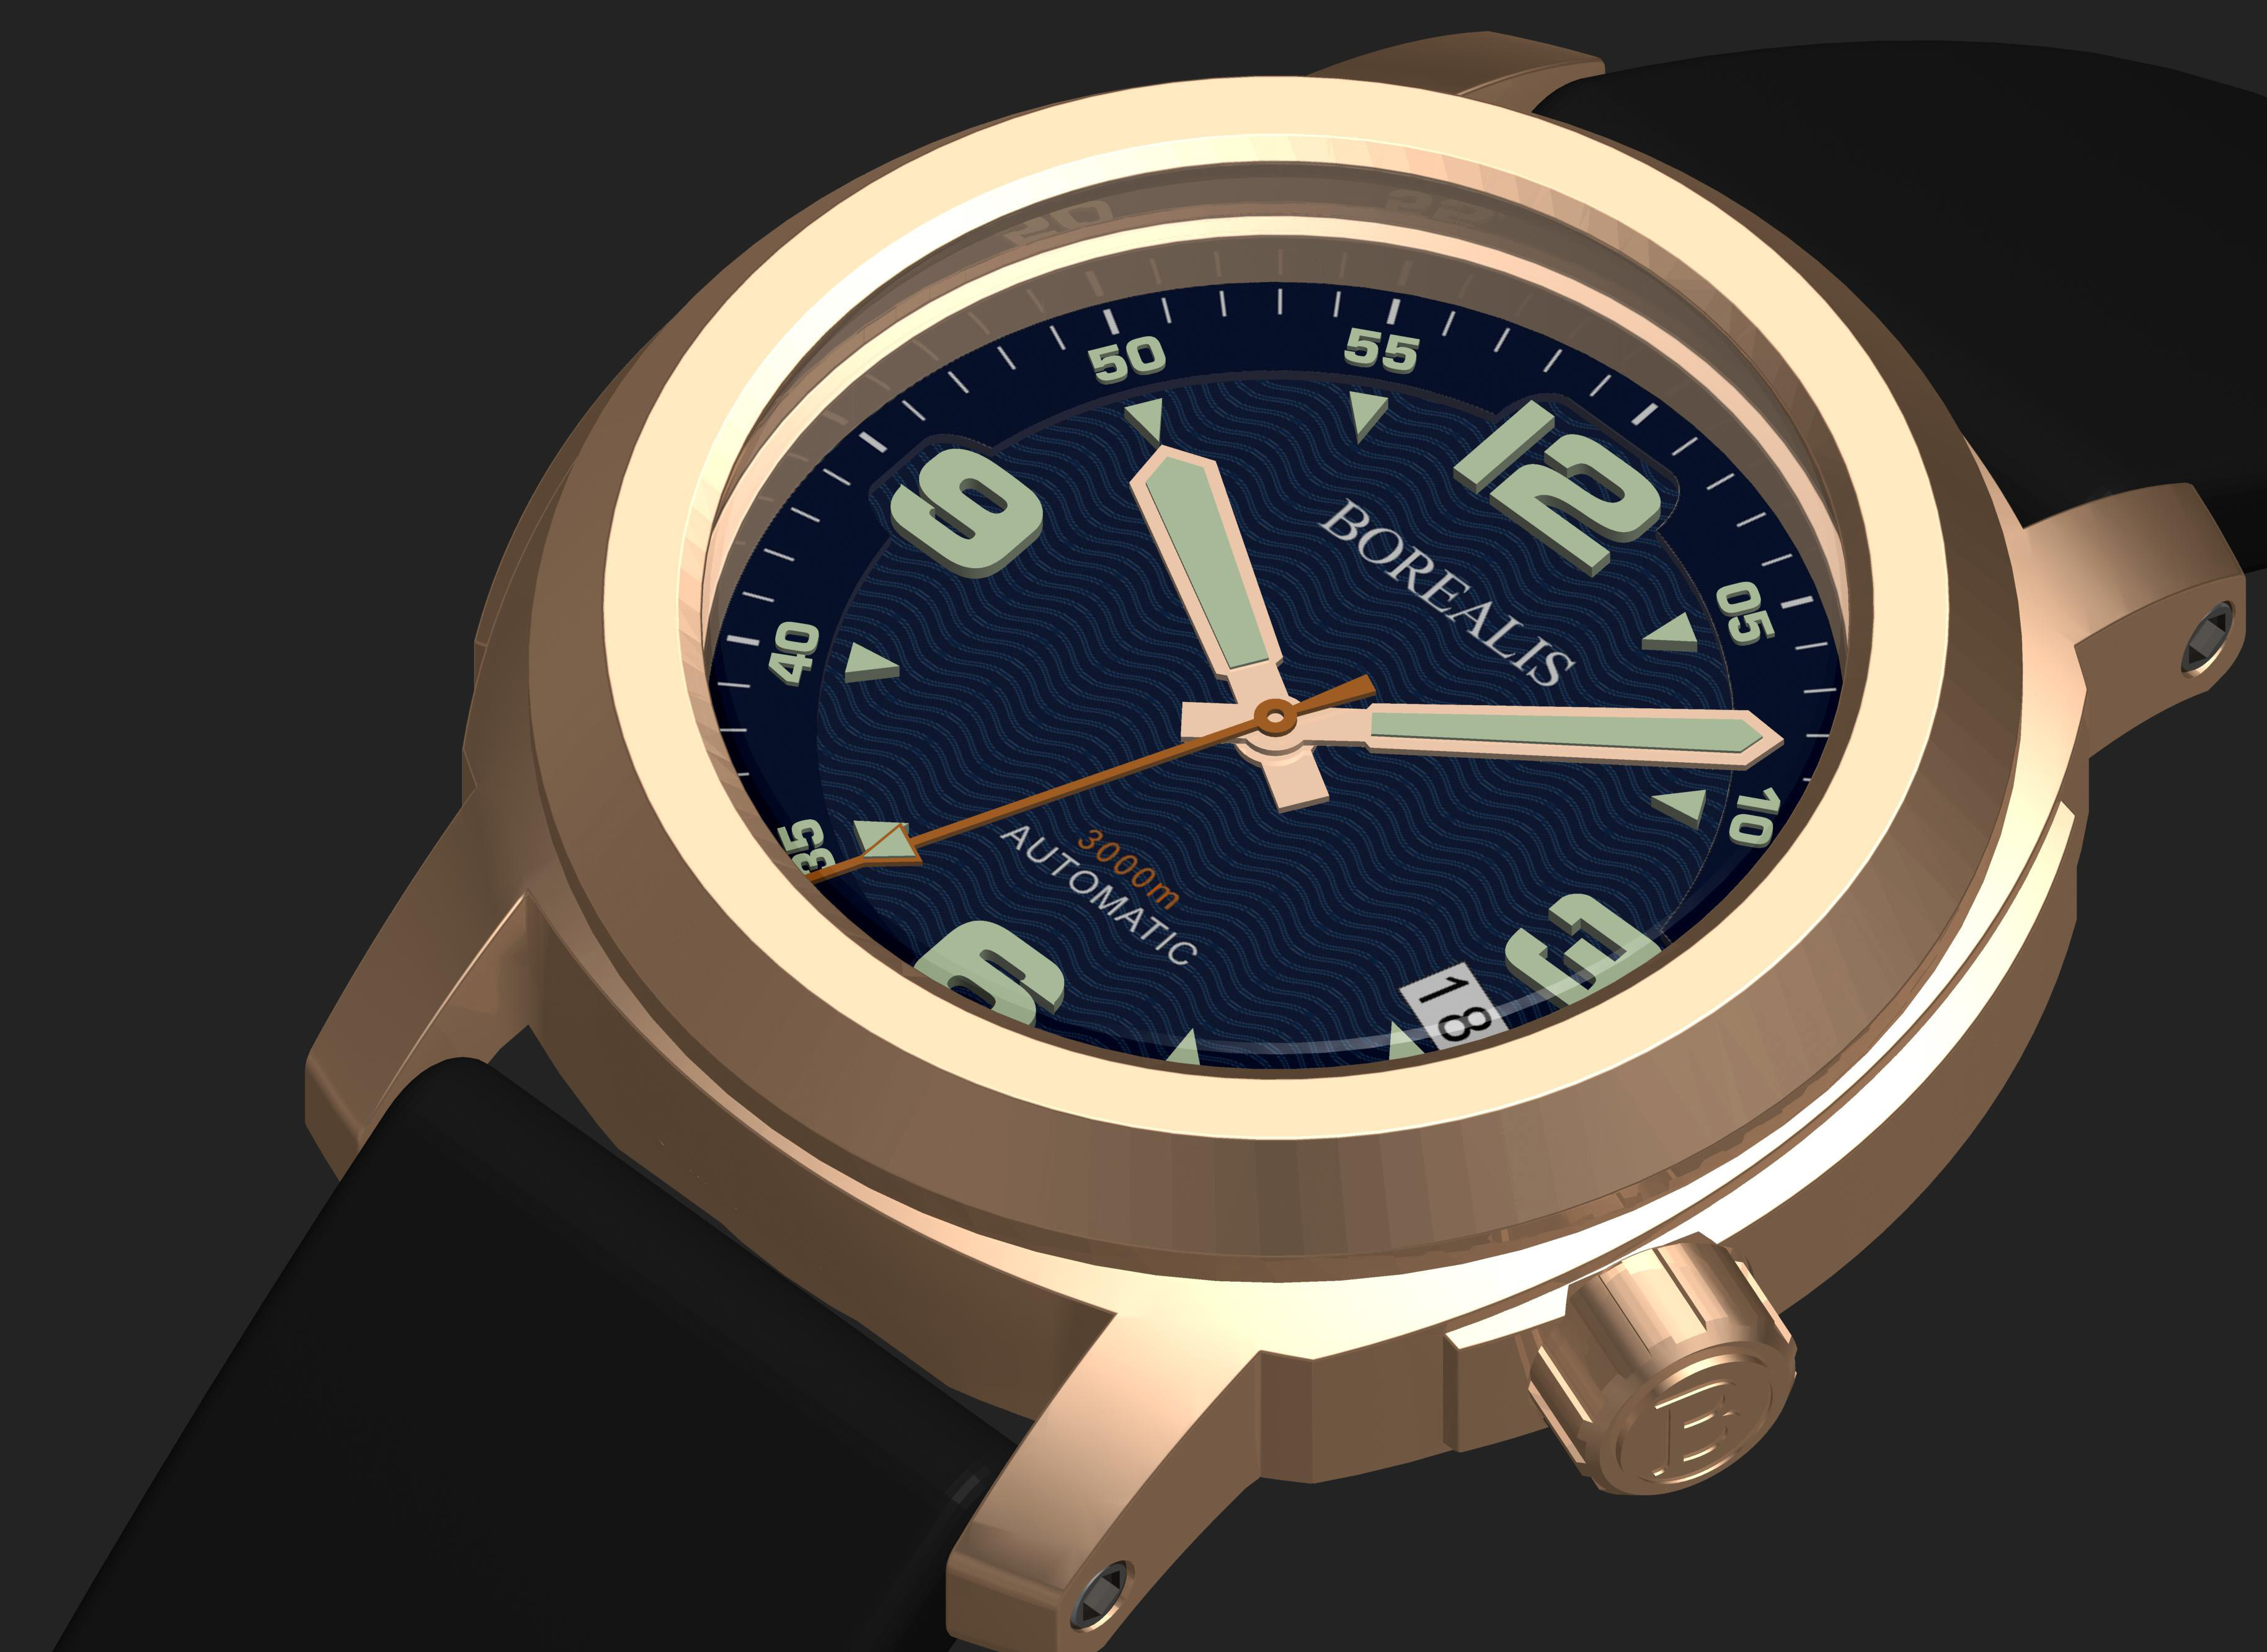 Borealis Batial Bronze CuSn8 Blue 3000m Miyota 9015 Automatic Diver Watch With Date Display